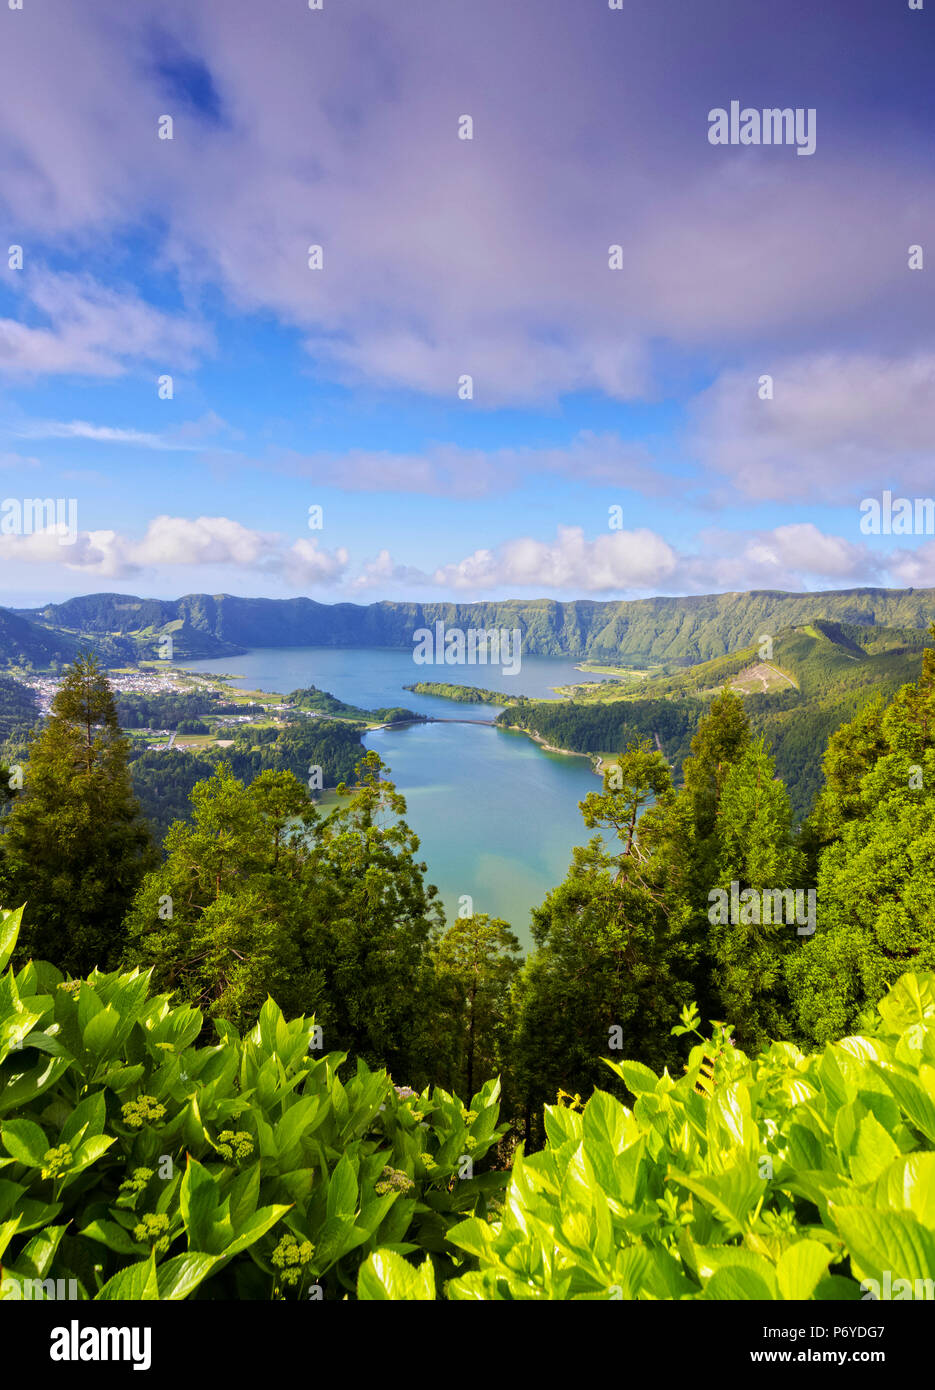 Portugal, Azores, Sao Miguel, municipality of Ponta Delgada, Sete Cidades, elevated view of the Lagoa das Sete Cidades. - Stock Image